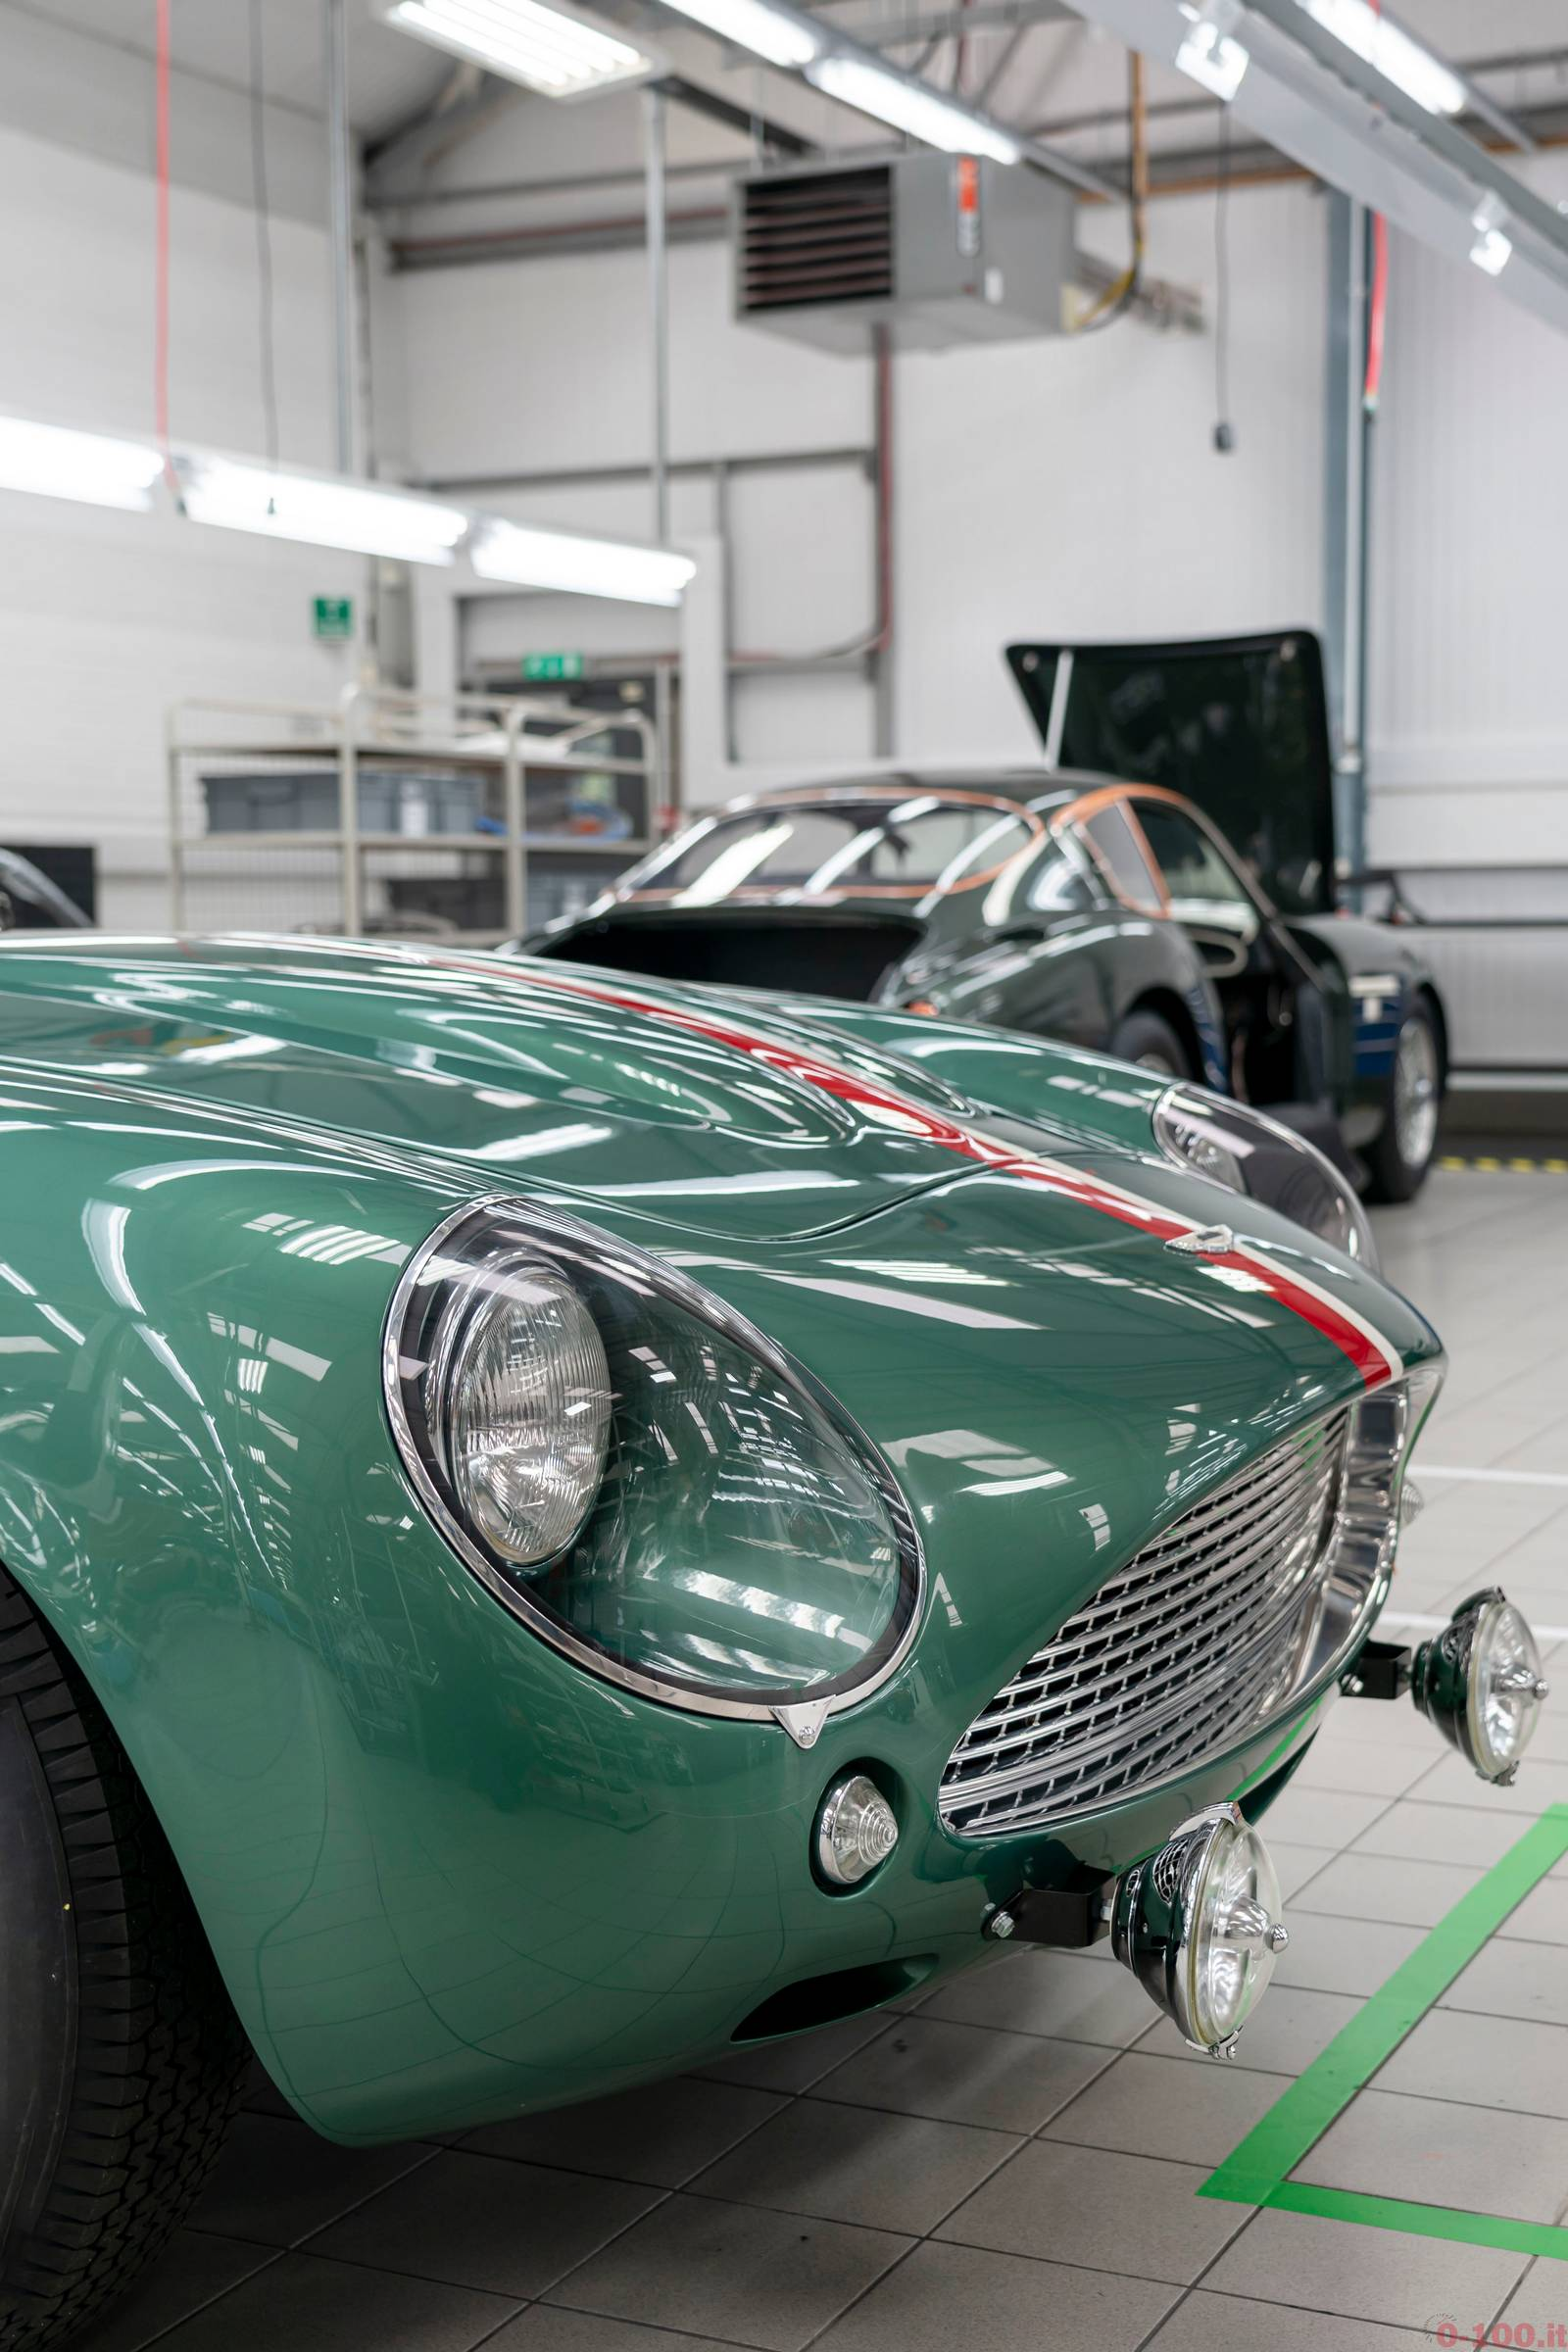 martin_db4_gtz_sanction_3_zagato_centenary_collection_0-100_9